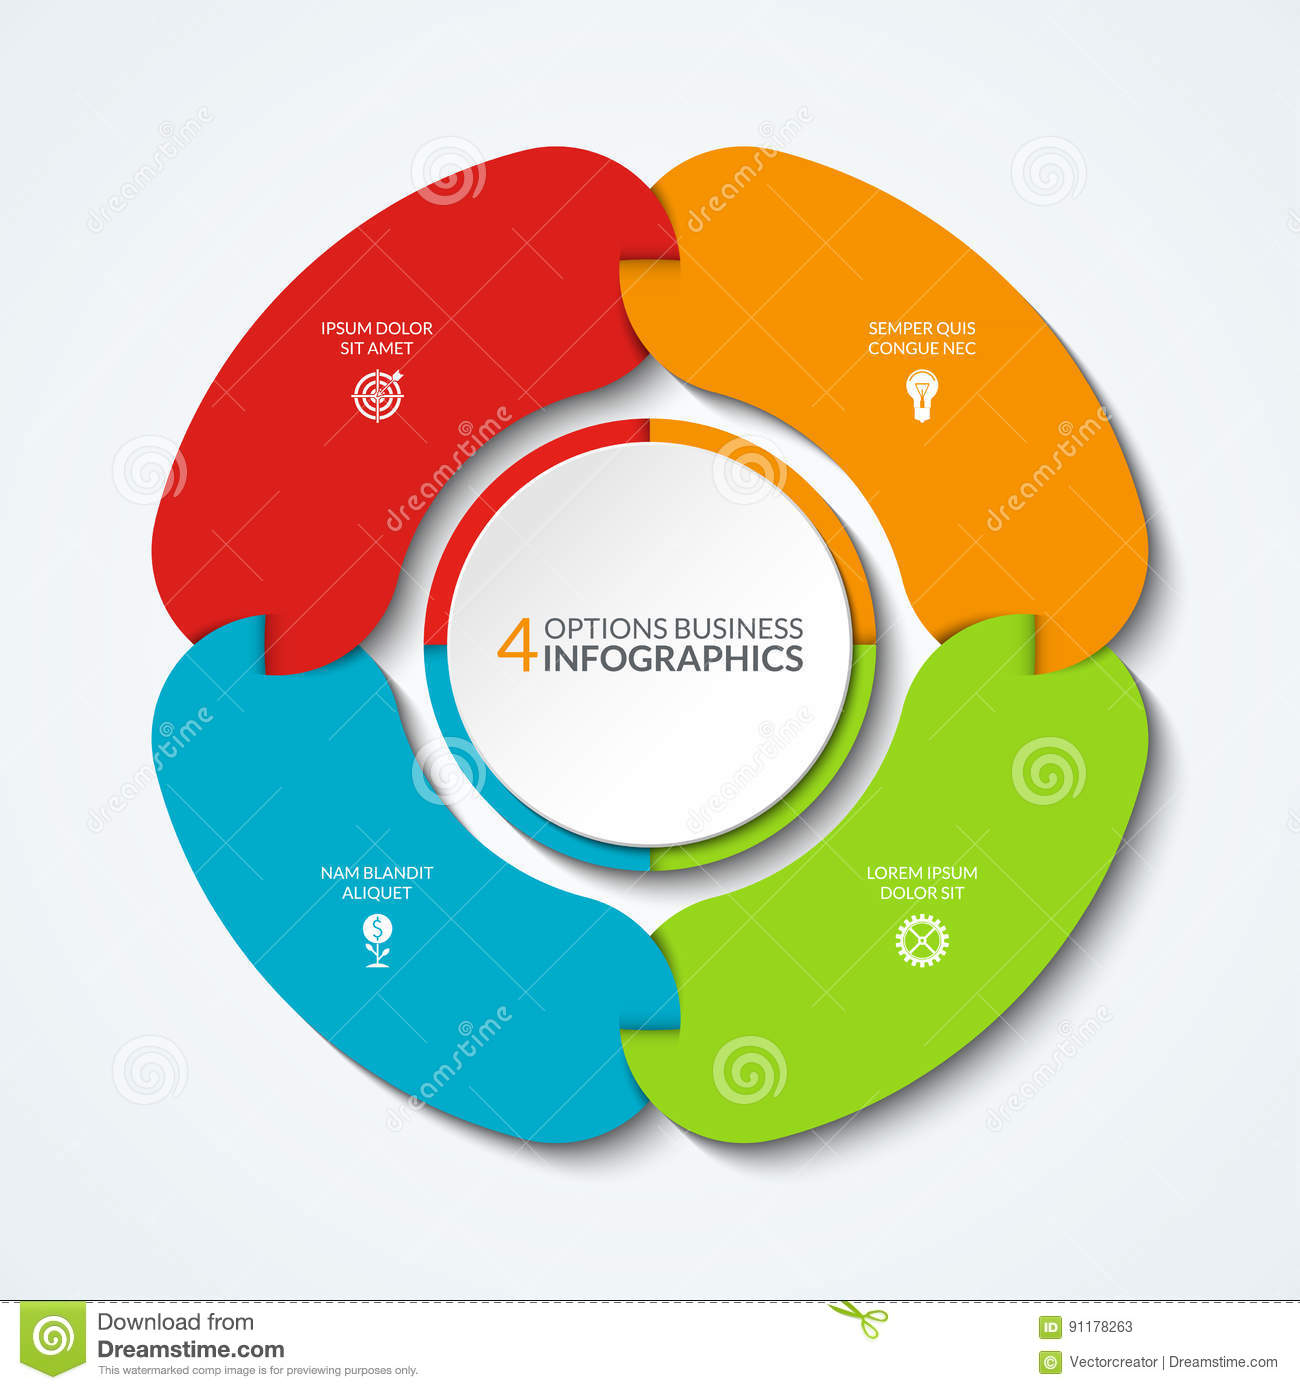 hight resolution of infographic pie chart business concept of 4 connected parts segments